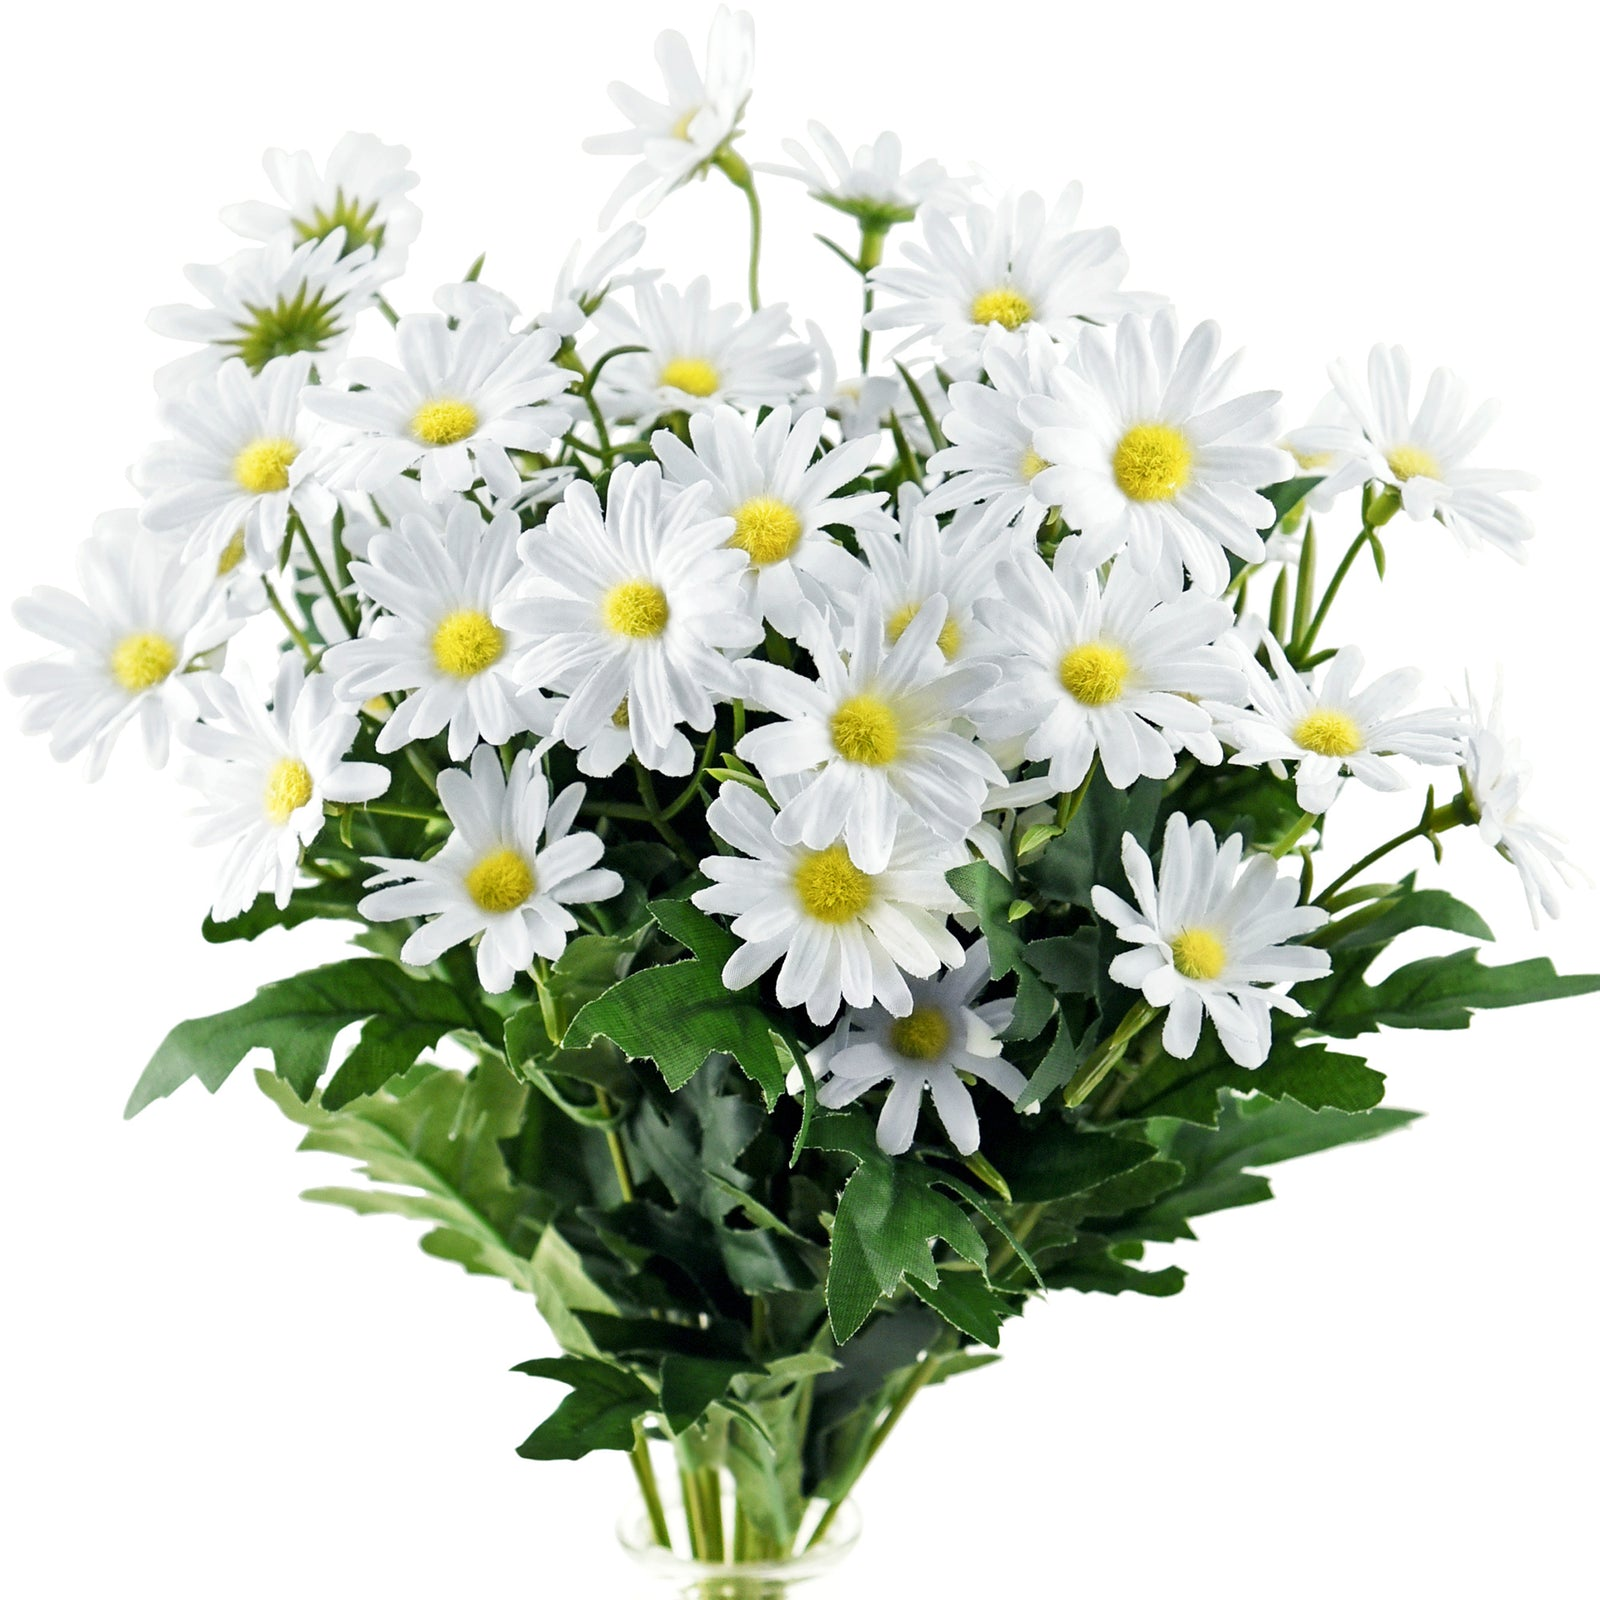 Daisy Silk Flowers Outdoor Artificial Flowers Arrangements (Simply White) 2 Bunches